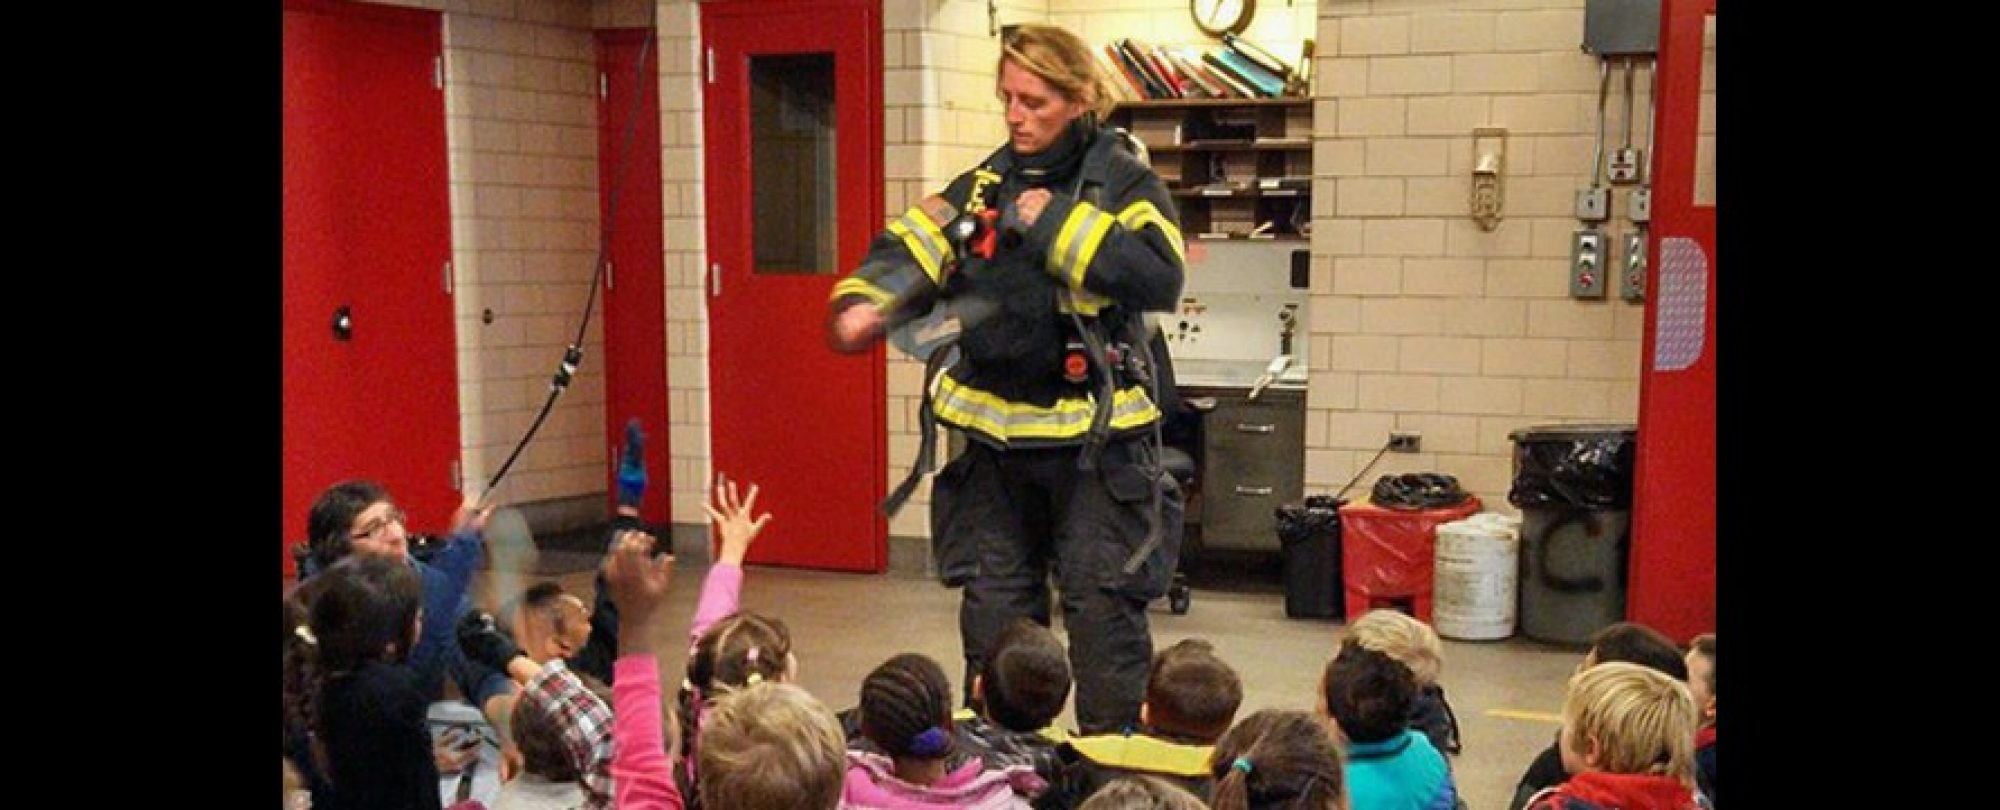 firefighter giving equipment demonstration to children